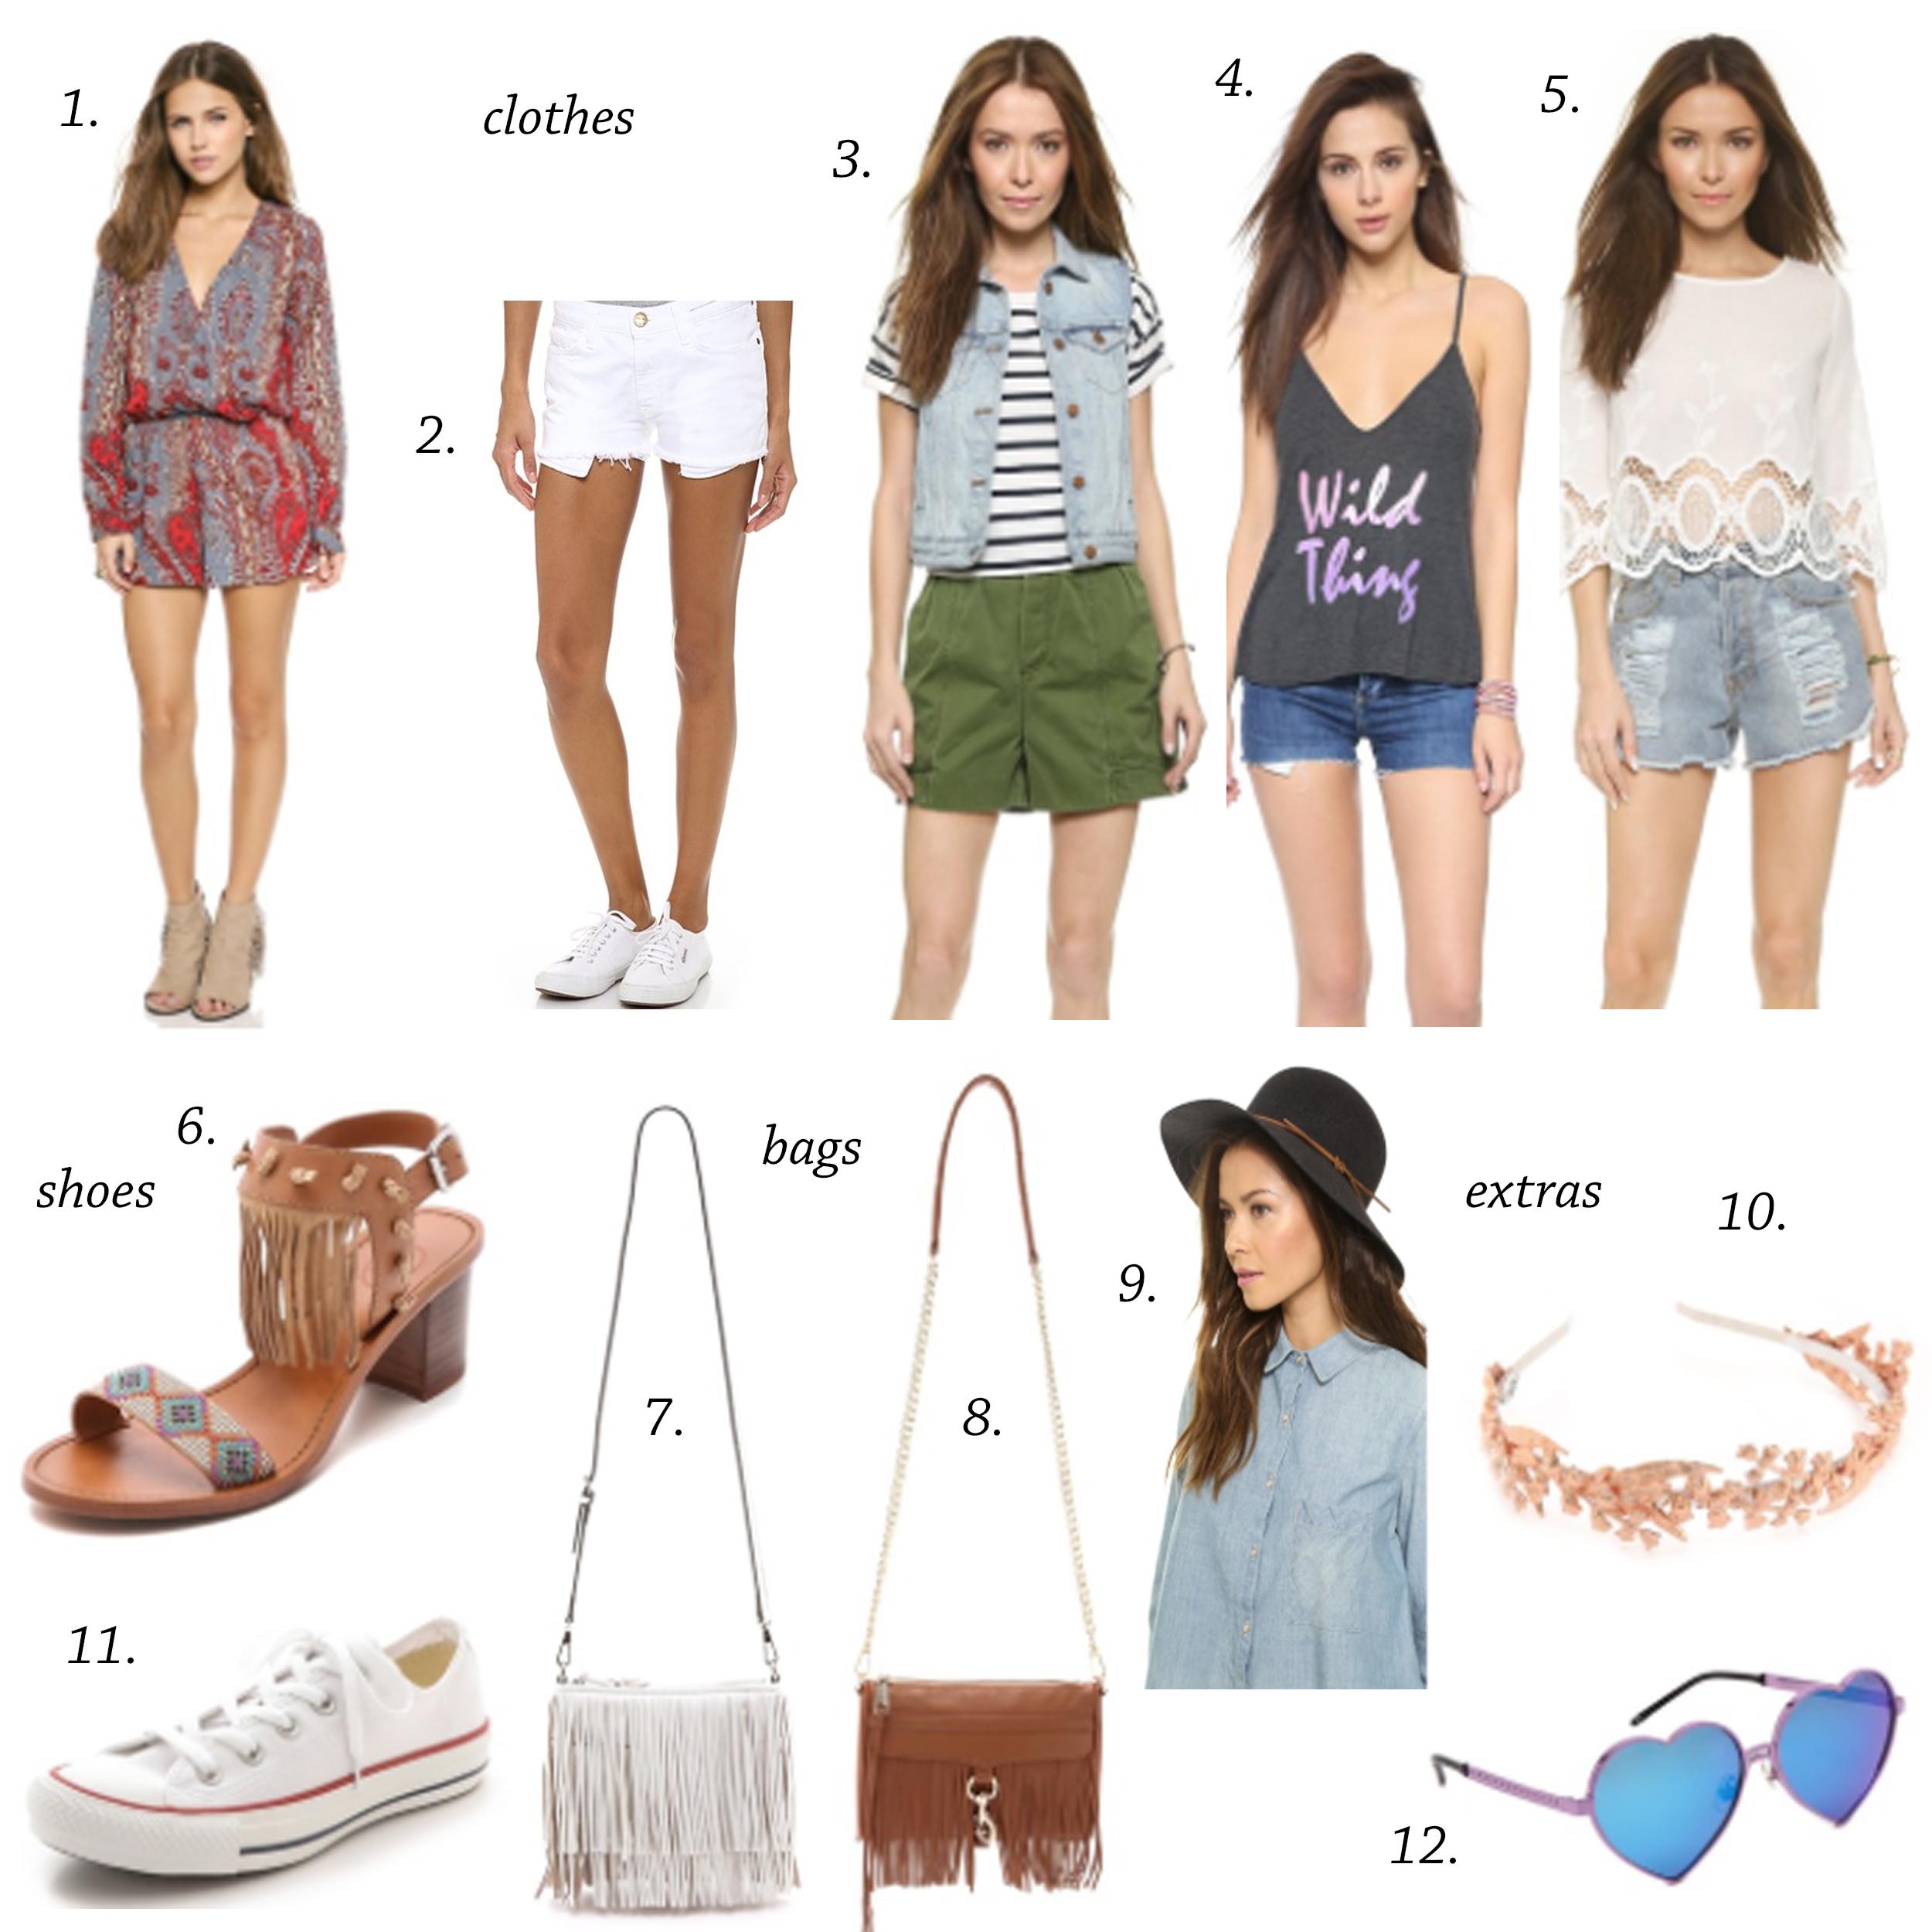 missyonmadison, melissatierney, coachella, what to wear for coachella, boho chic, coachella inspired, fringe, fringe trend, spring, spring style, palm springs, travel, headpieces, flower crown, wildfox, wildfox sunglasses, heart sunglasses, converse, white converse, fringe sandals, fringe bag, rebecca minkoff, rebecca minkoff mini mac, rebecca minkoff fringe bag, white shorts, cut off shorts, rompers, floppy hat, black floppy hat, denim vest, vest, shopbop, shopbopsale, sale picks, online shopping, online sale, retail me not shop bop,